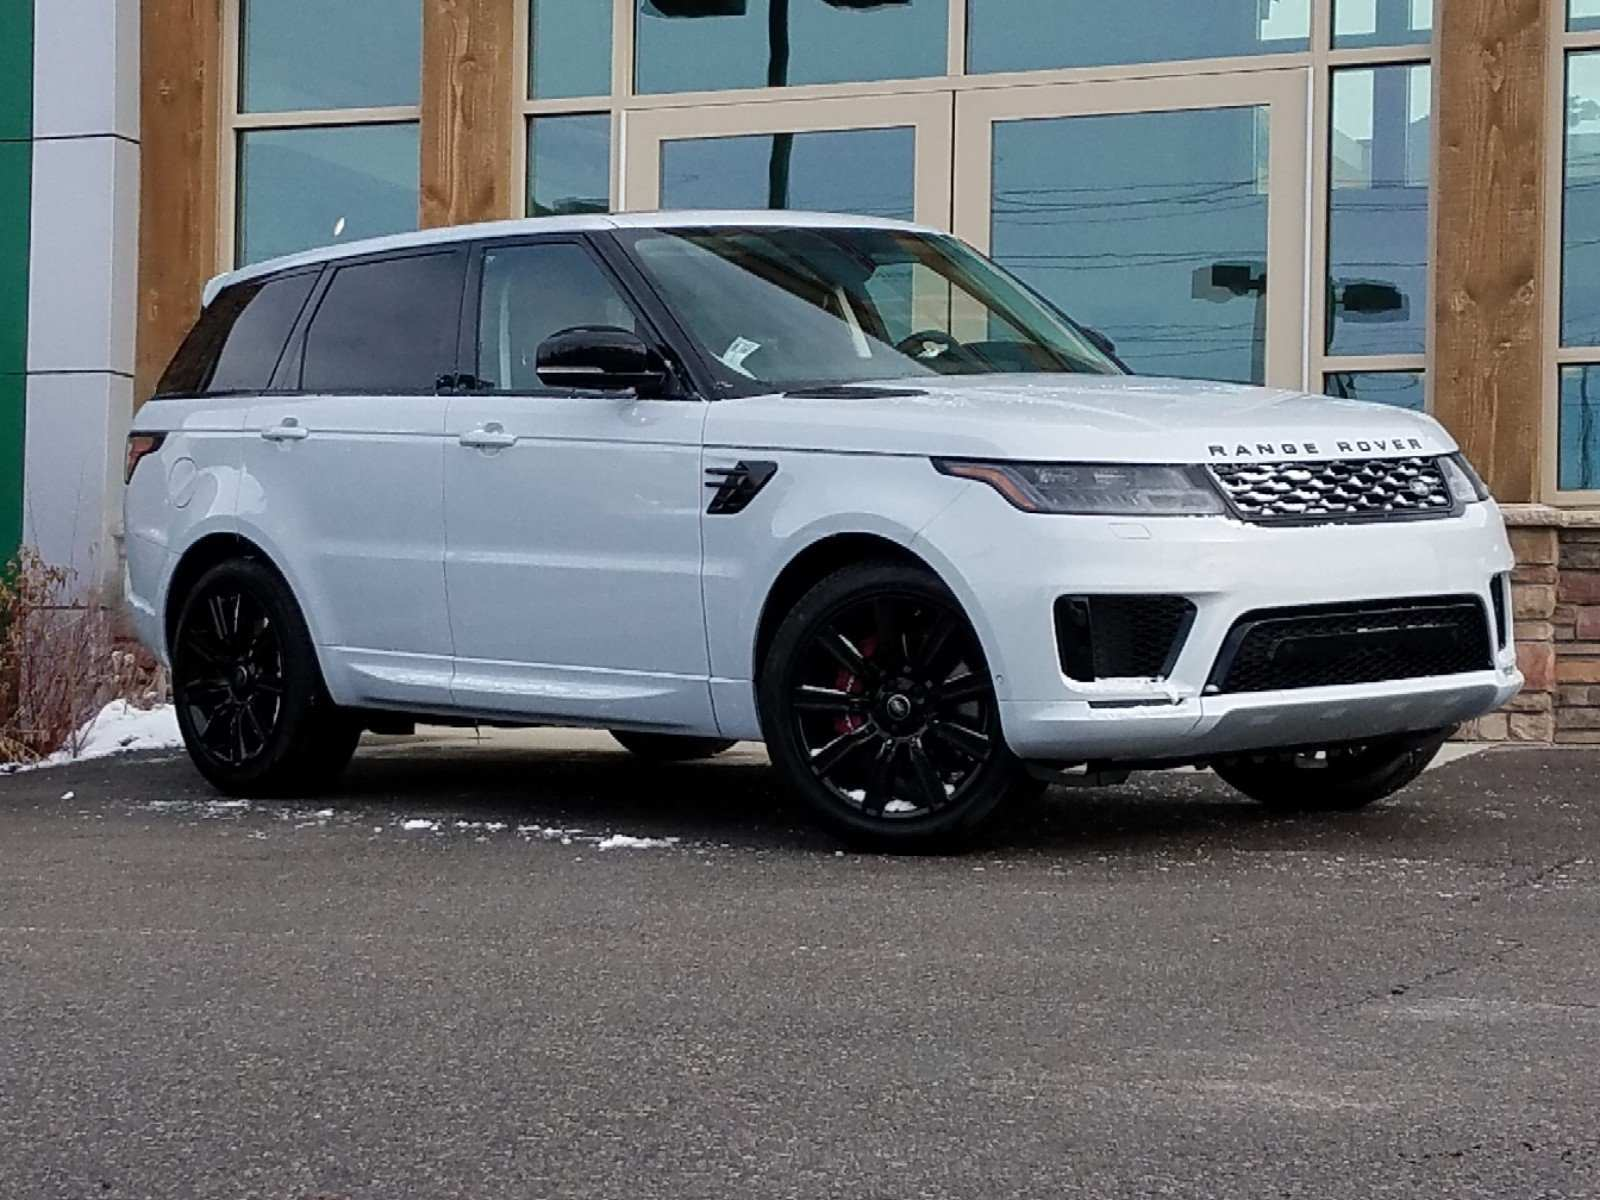 62 Great 2019 Land Rover Range Rover Sport Configurations by 2019 Land Rover Range Rover Sport